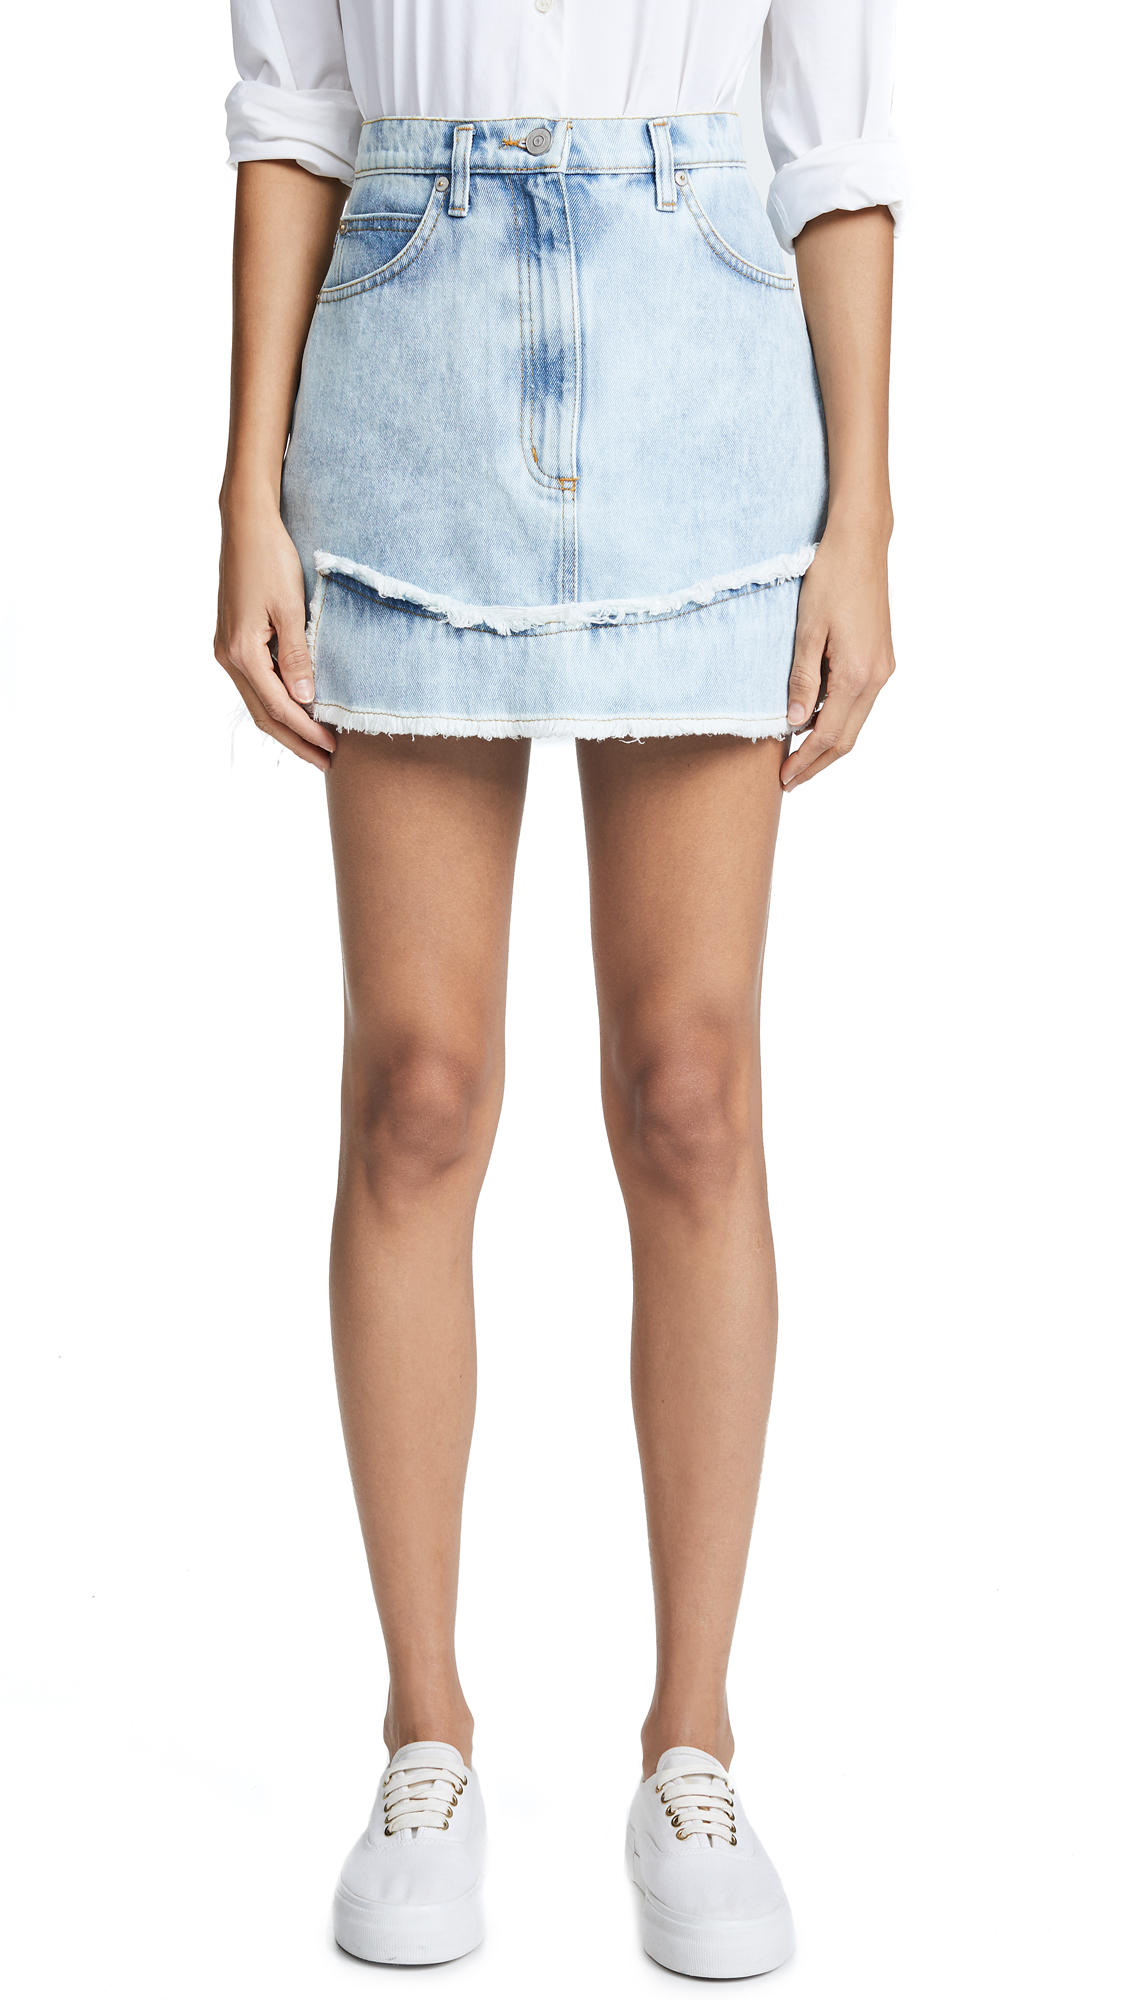 Natasha Zinko Denim Printed Miniskirt In Light Wash